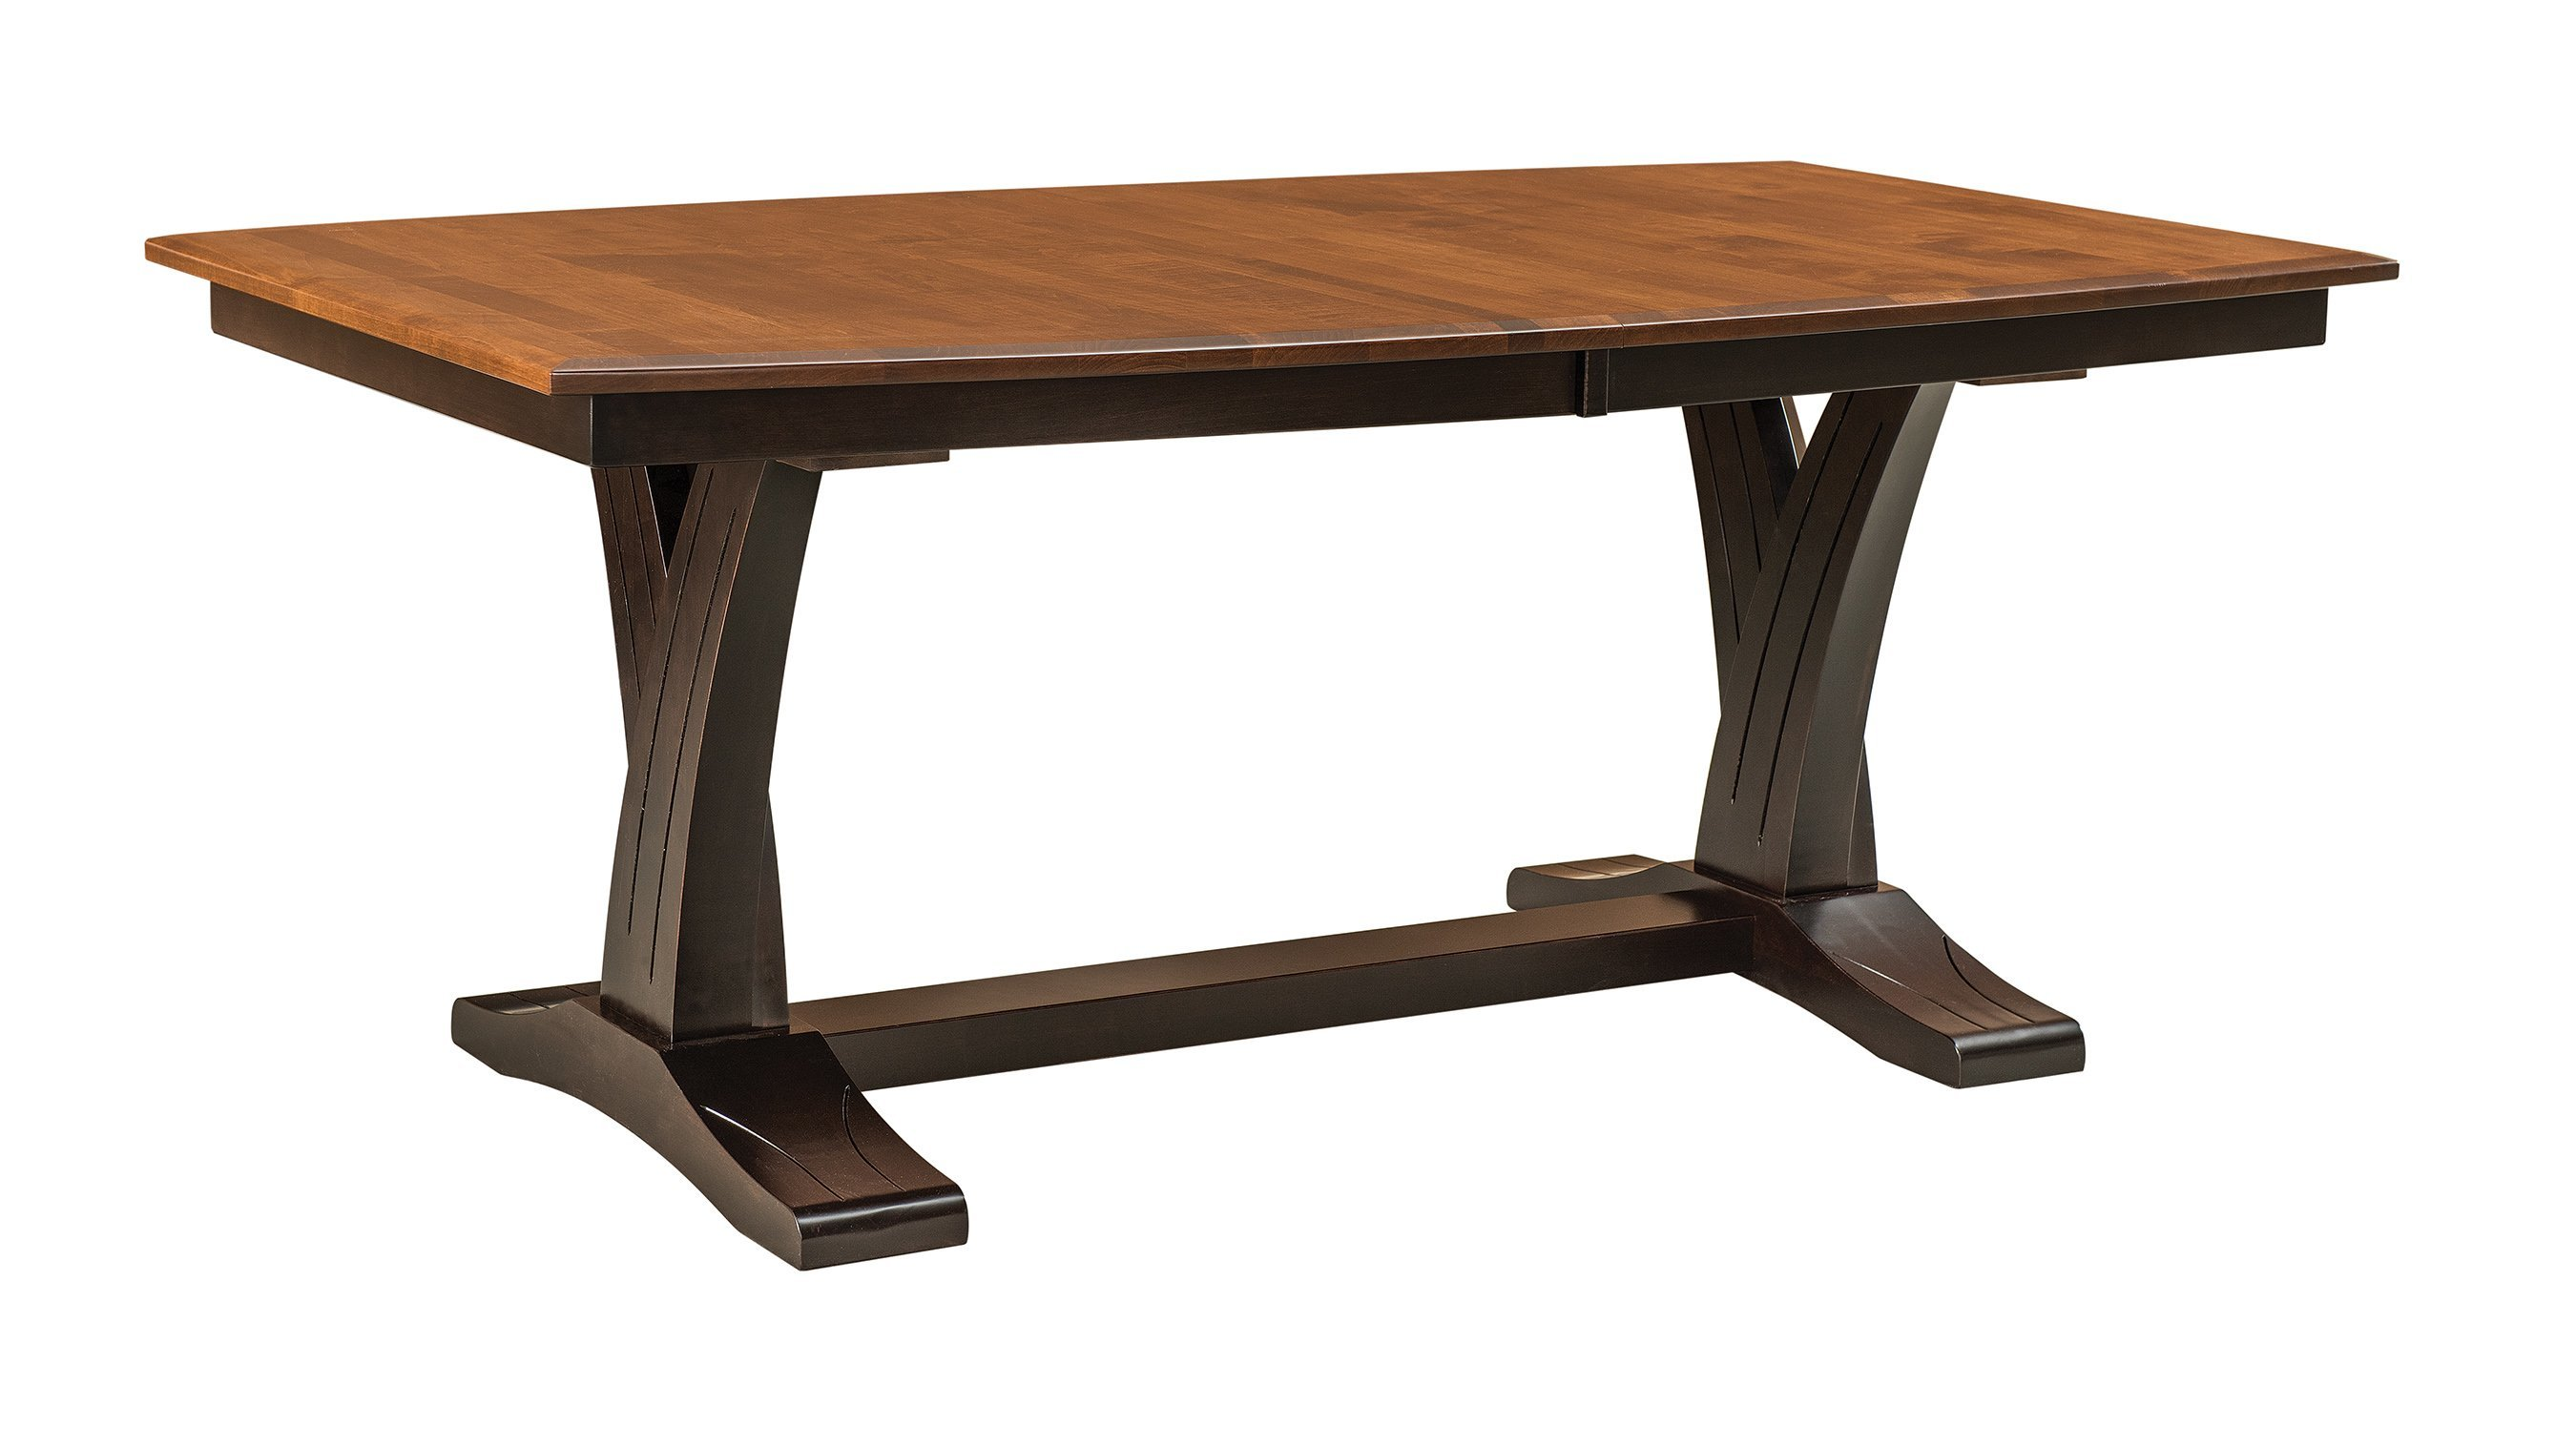 Trestle Dining Set Home Design Ideas and Pictures : Paris Trestle Dining Table 852237 from www.startbizquitjob.com size 2700 x 1517 jpeg 536kB